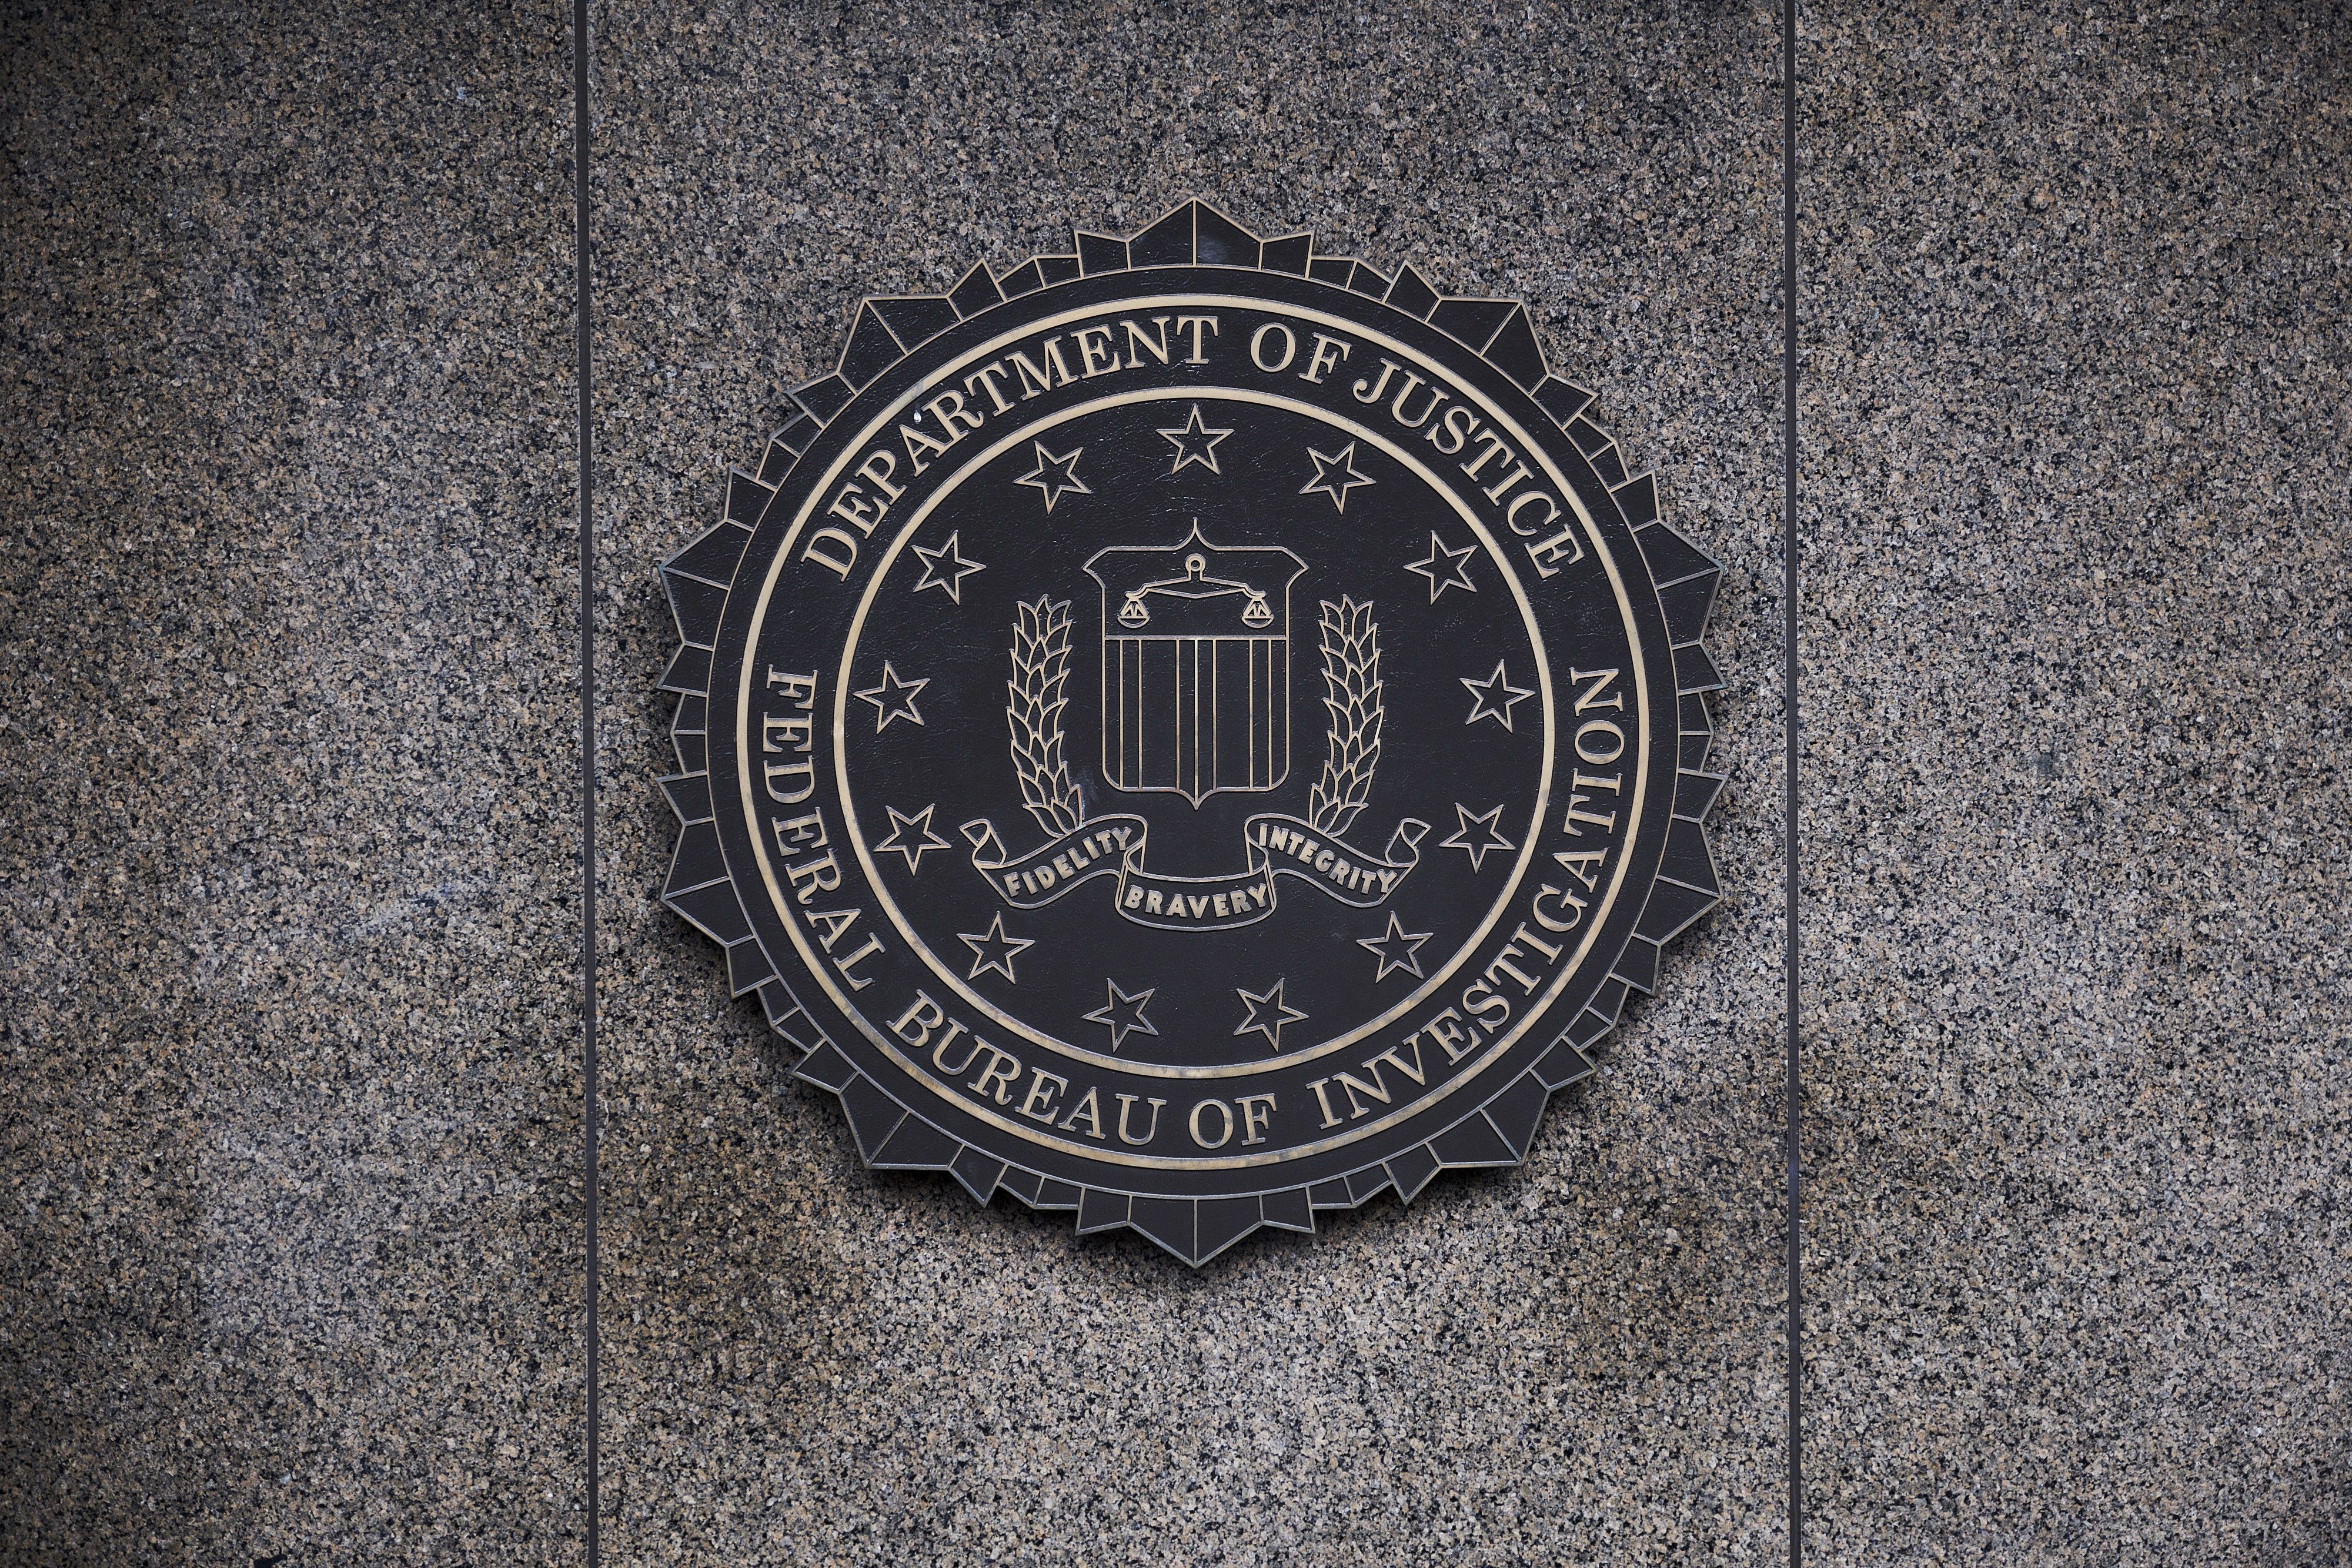 The Federal Bureau of Investigation seal is displayed outside FBI headquarters in Washington, D.C., U.S., on Friday, Feb. 2, 2018. FBI and Justice Department officials got a warrant to spy on a Trump campaign associate by misleading a surveillance court judge, House Republicans contend in a newly released memo that Democrats have dismissed as a contrived account intended to protect the president. Photographer: T.J. Kirkpatrick/Bloomberg via Getty Images